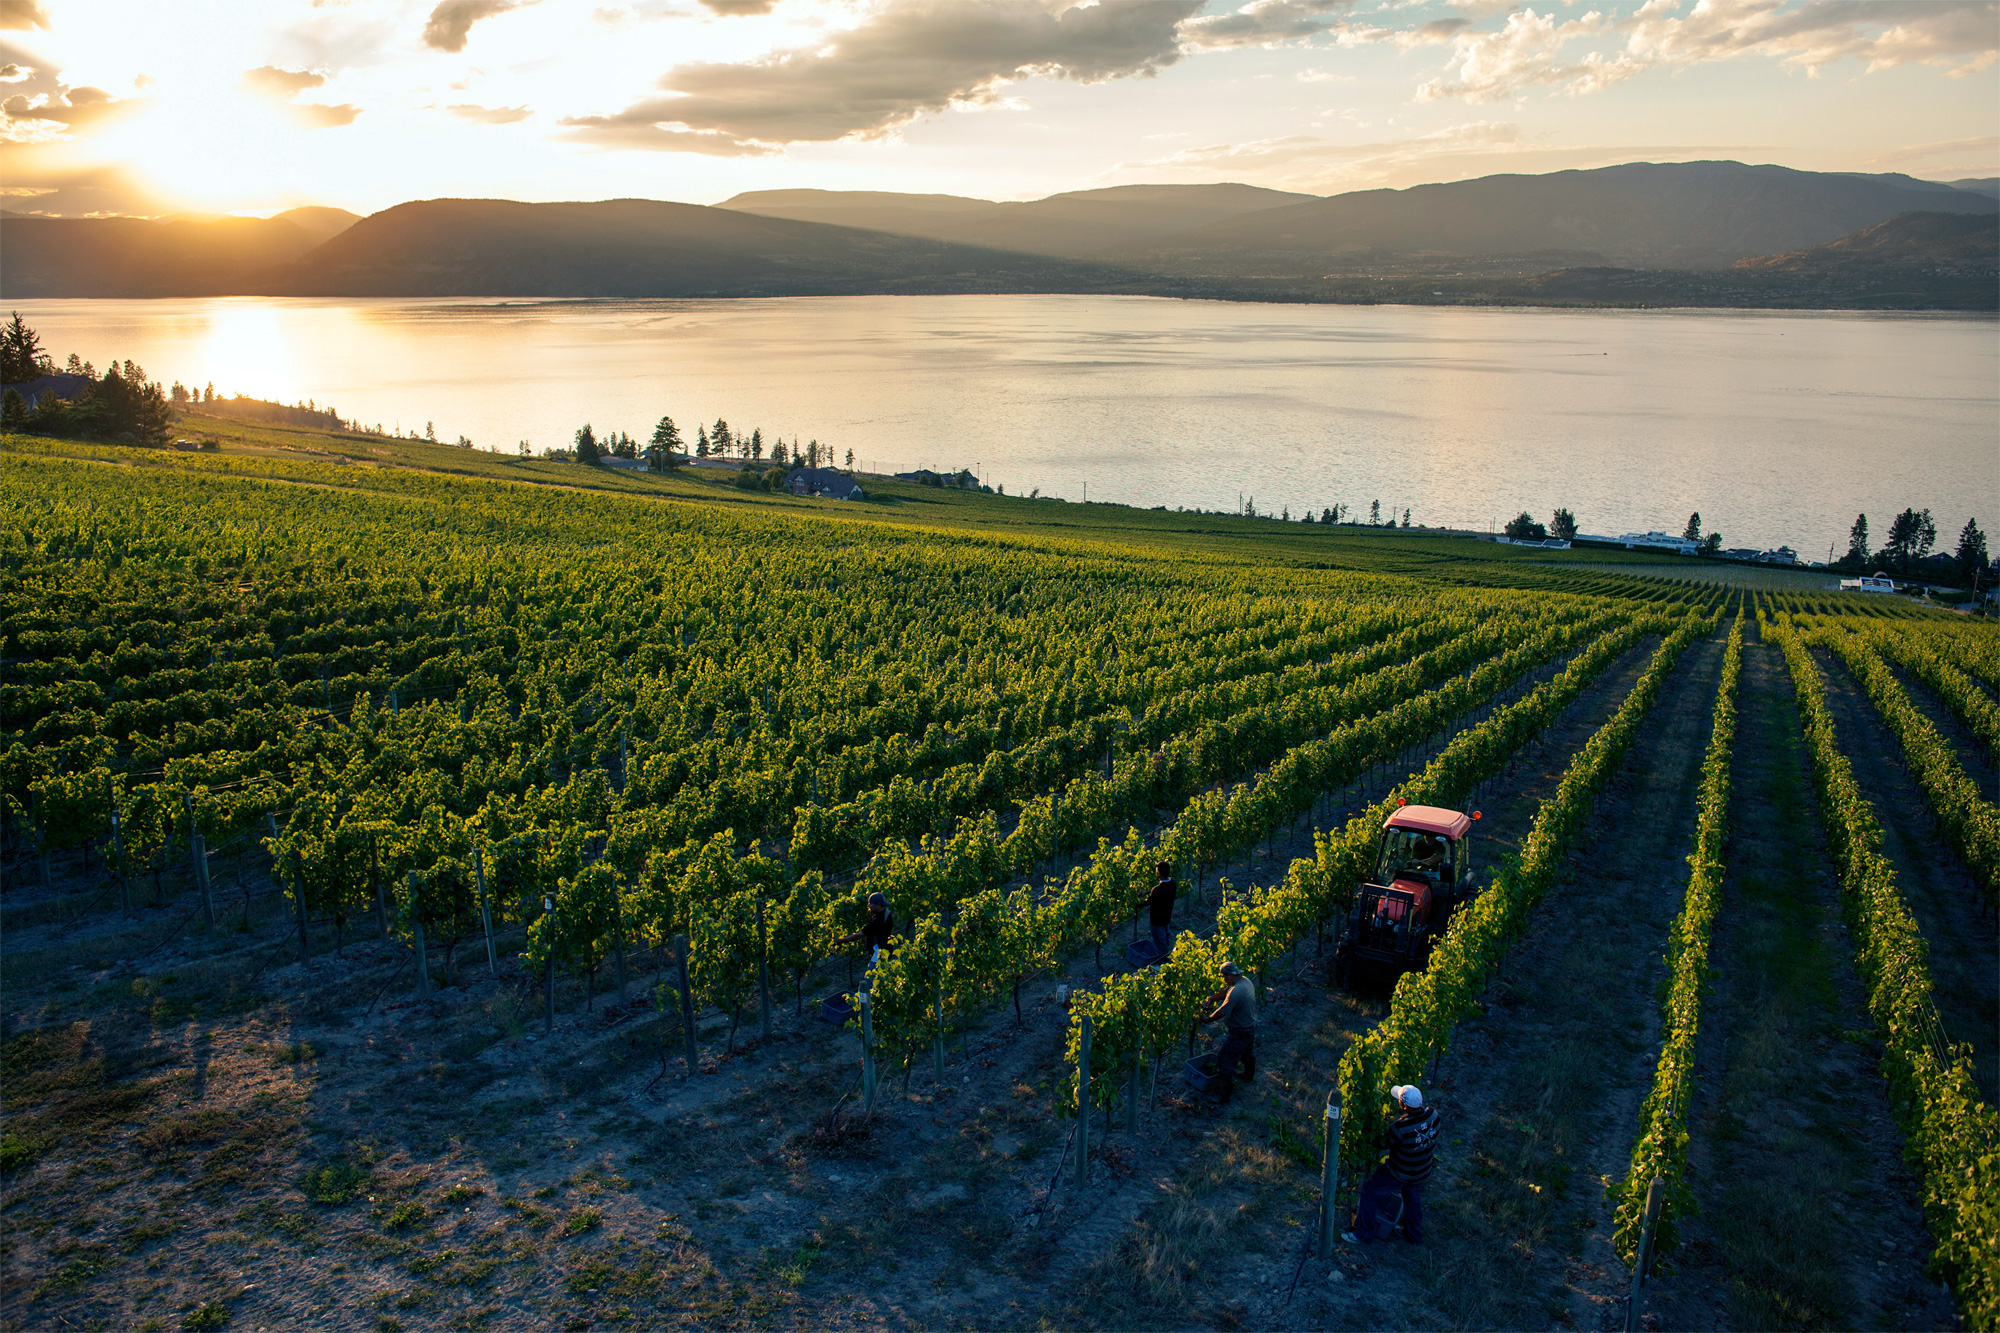 Kelowna Vineyards